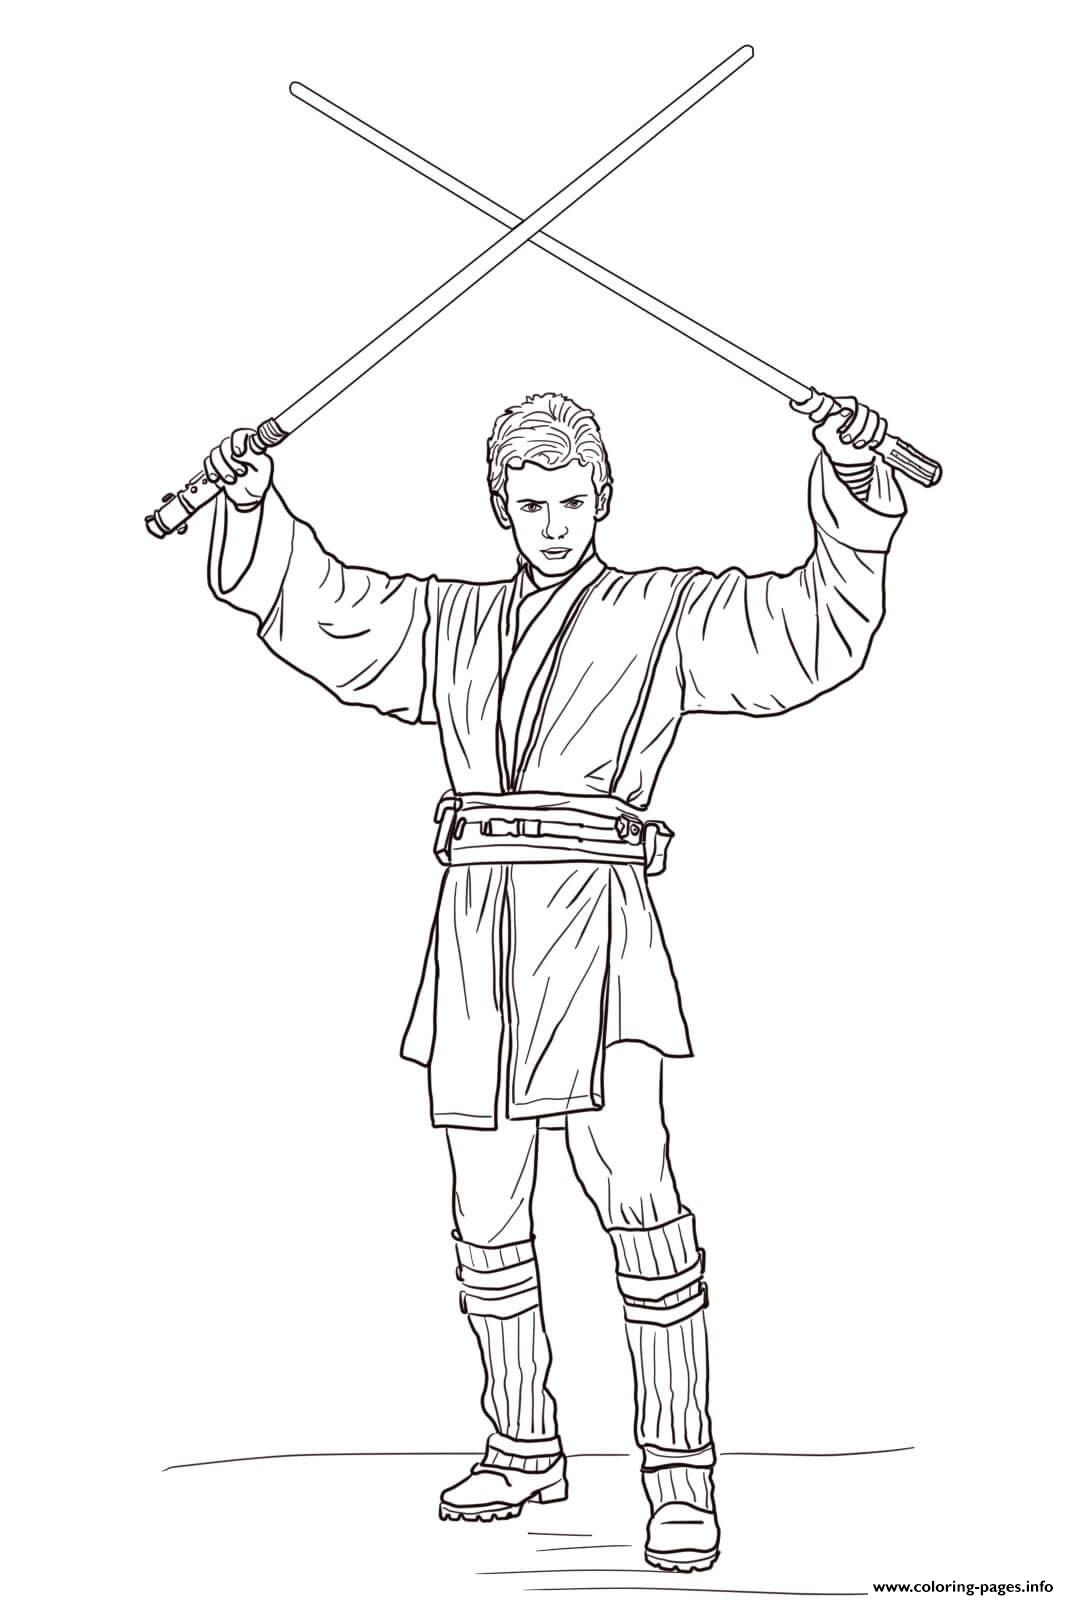 Anakin Skywalker With Lightsabers Star Wars Episode II Attack Of The Clones coloring pages